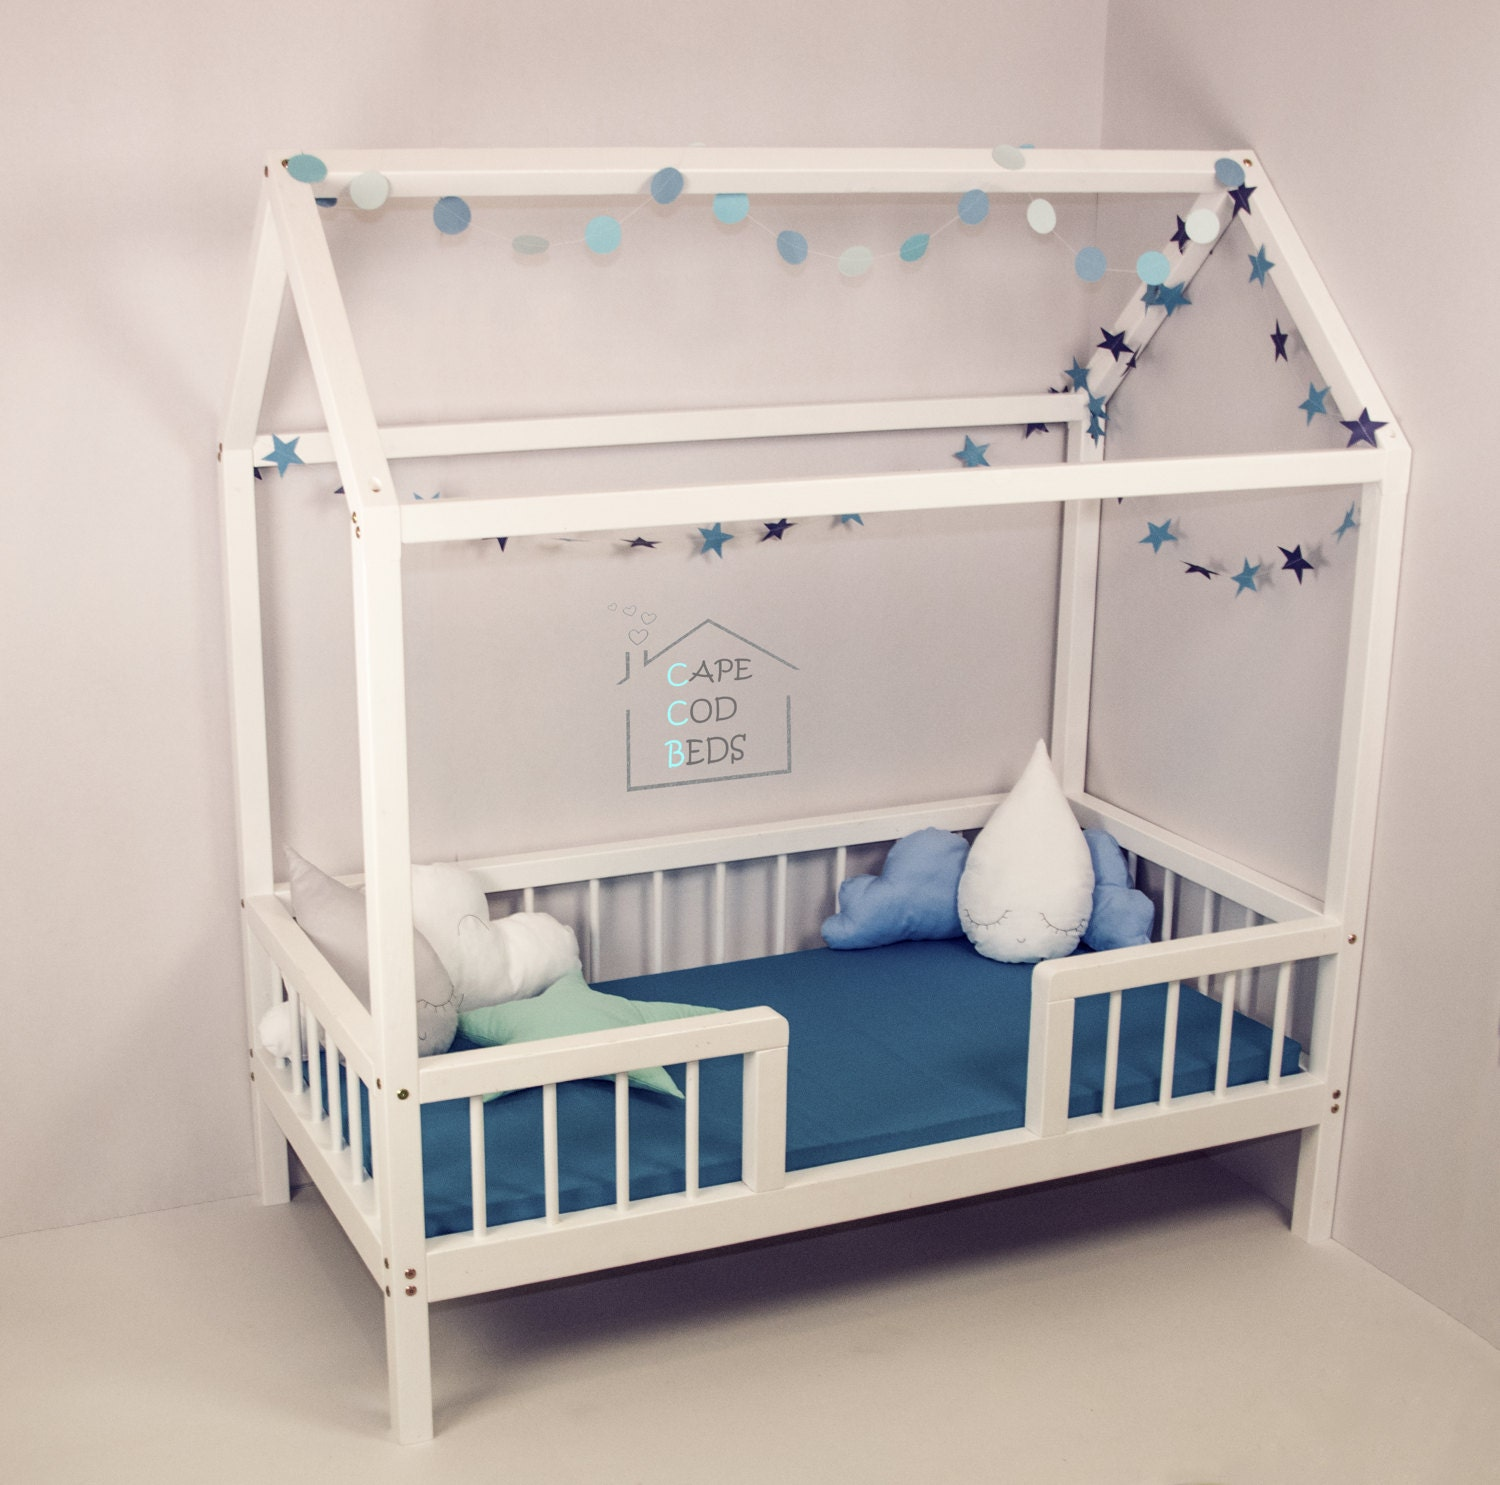 Crib size house shaped bed on legs with rails house bed for Frame house bed